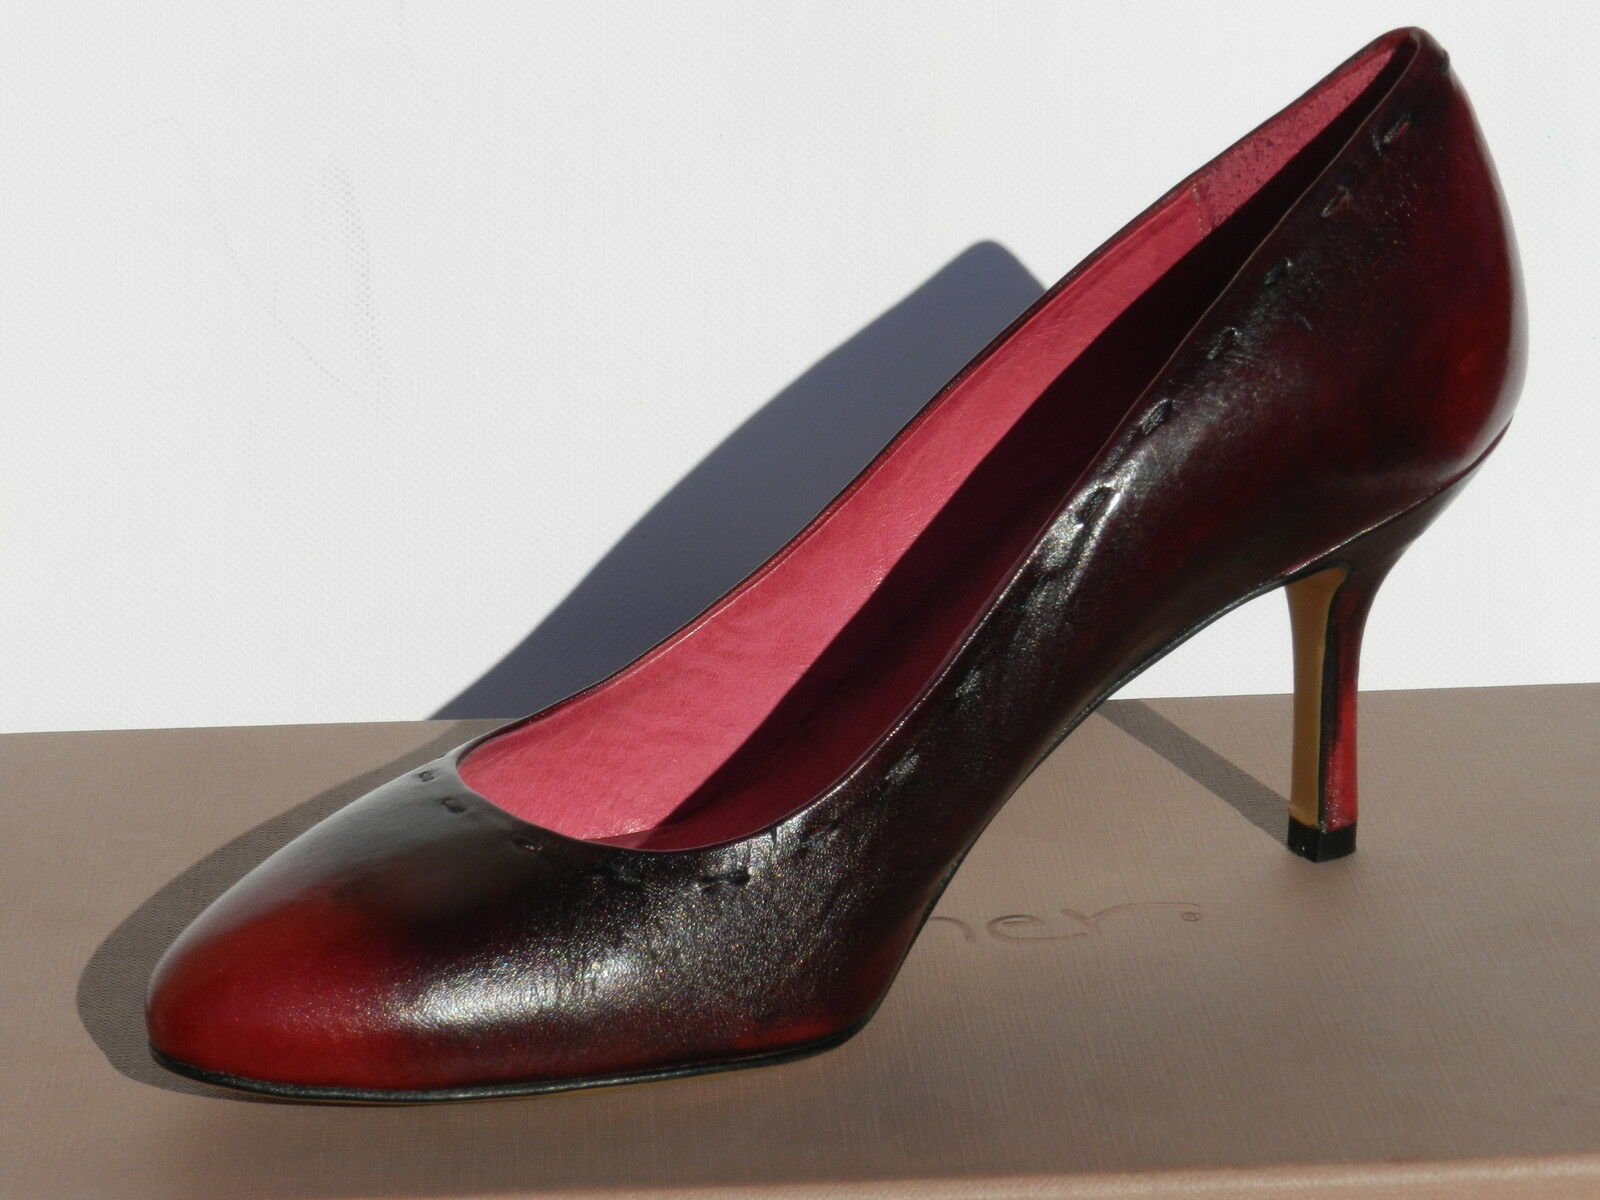 Eva Turner EE068 Chaussures Femme 37 Escarpins Luxe Rouge Court chaussures UK4 Neuf